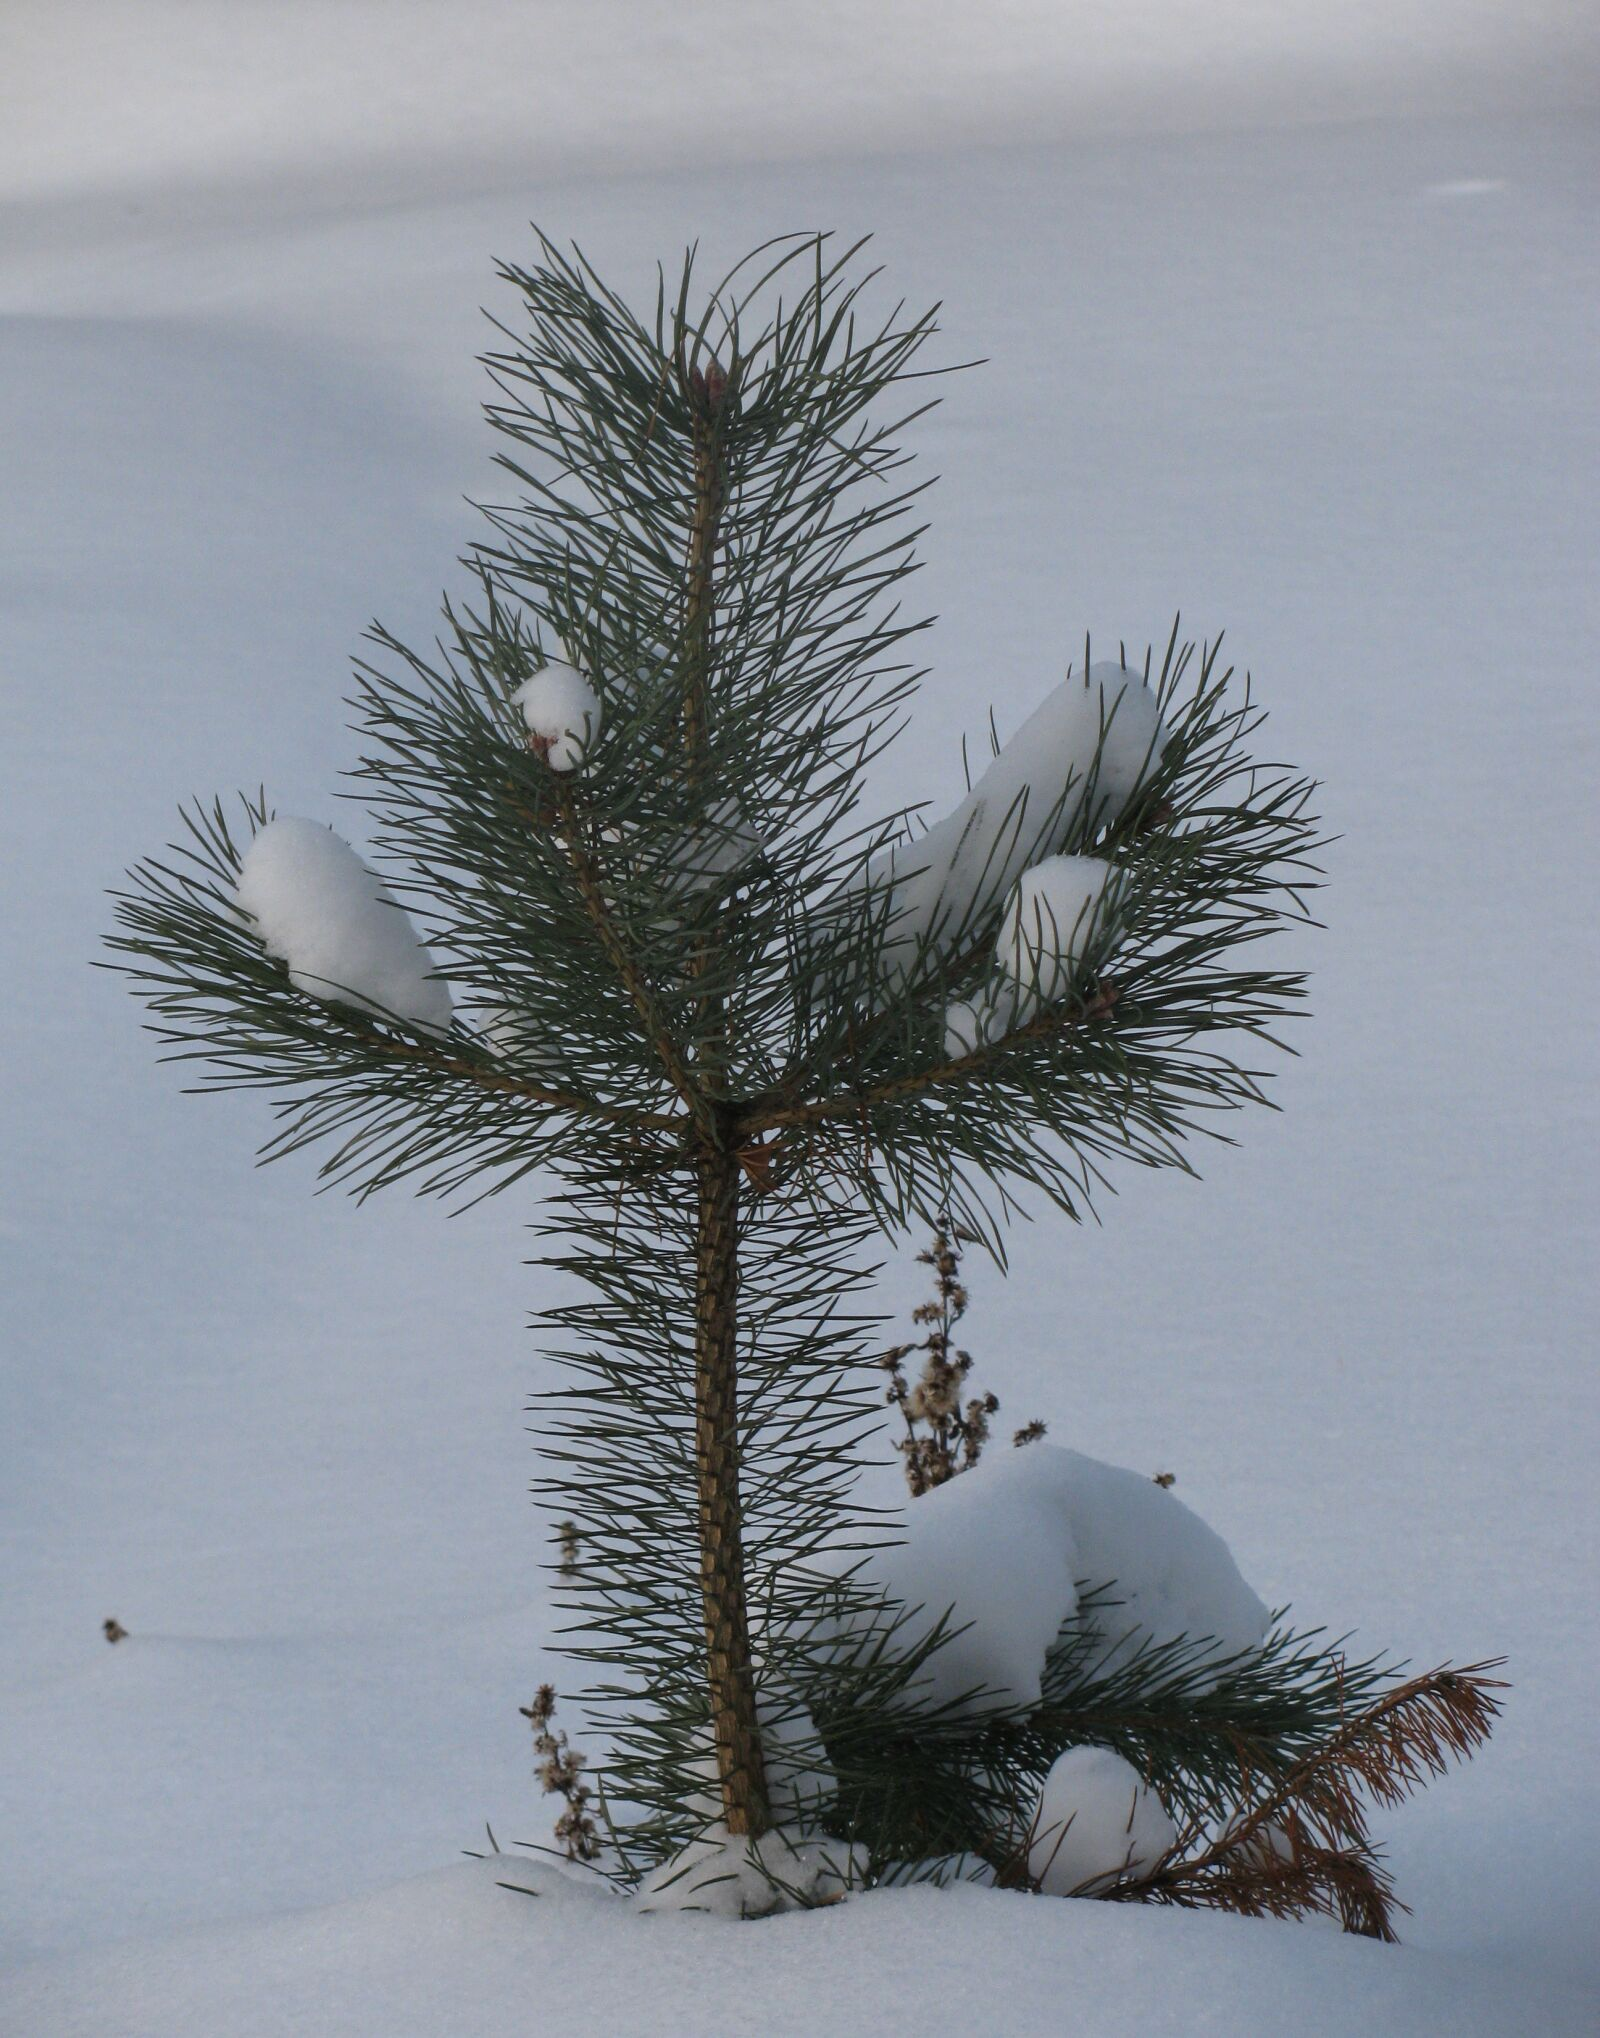 """Canon PowerShot SX110 IS sample photo. """"Winter, snow, nature"""" photography"""